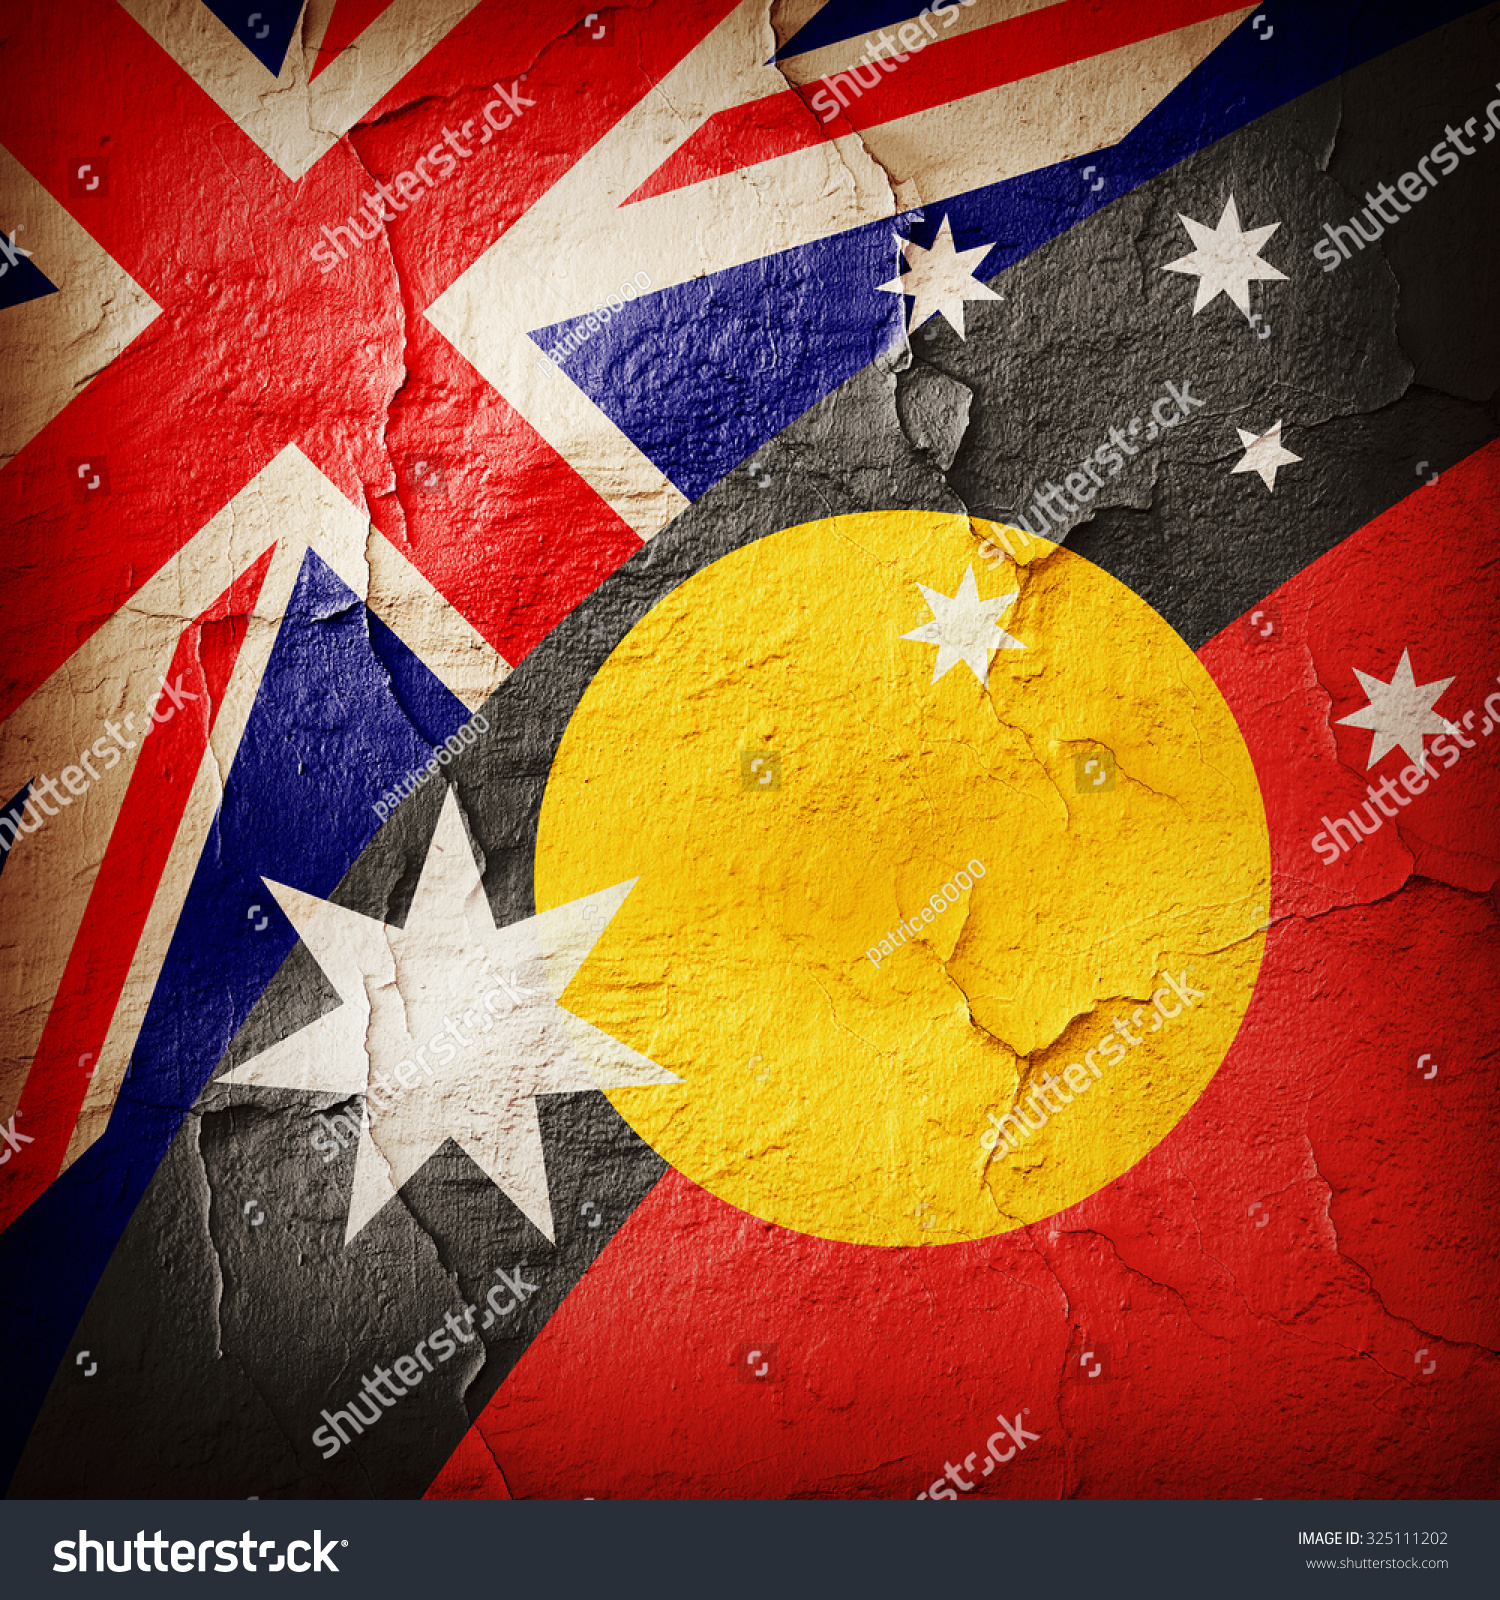 Australia Aboriginal Flags Wall Background Stock 1500x1600